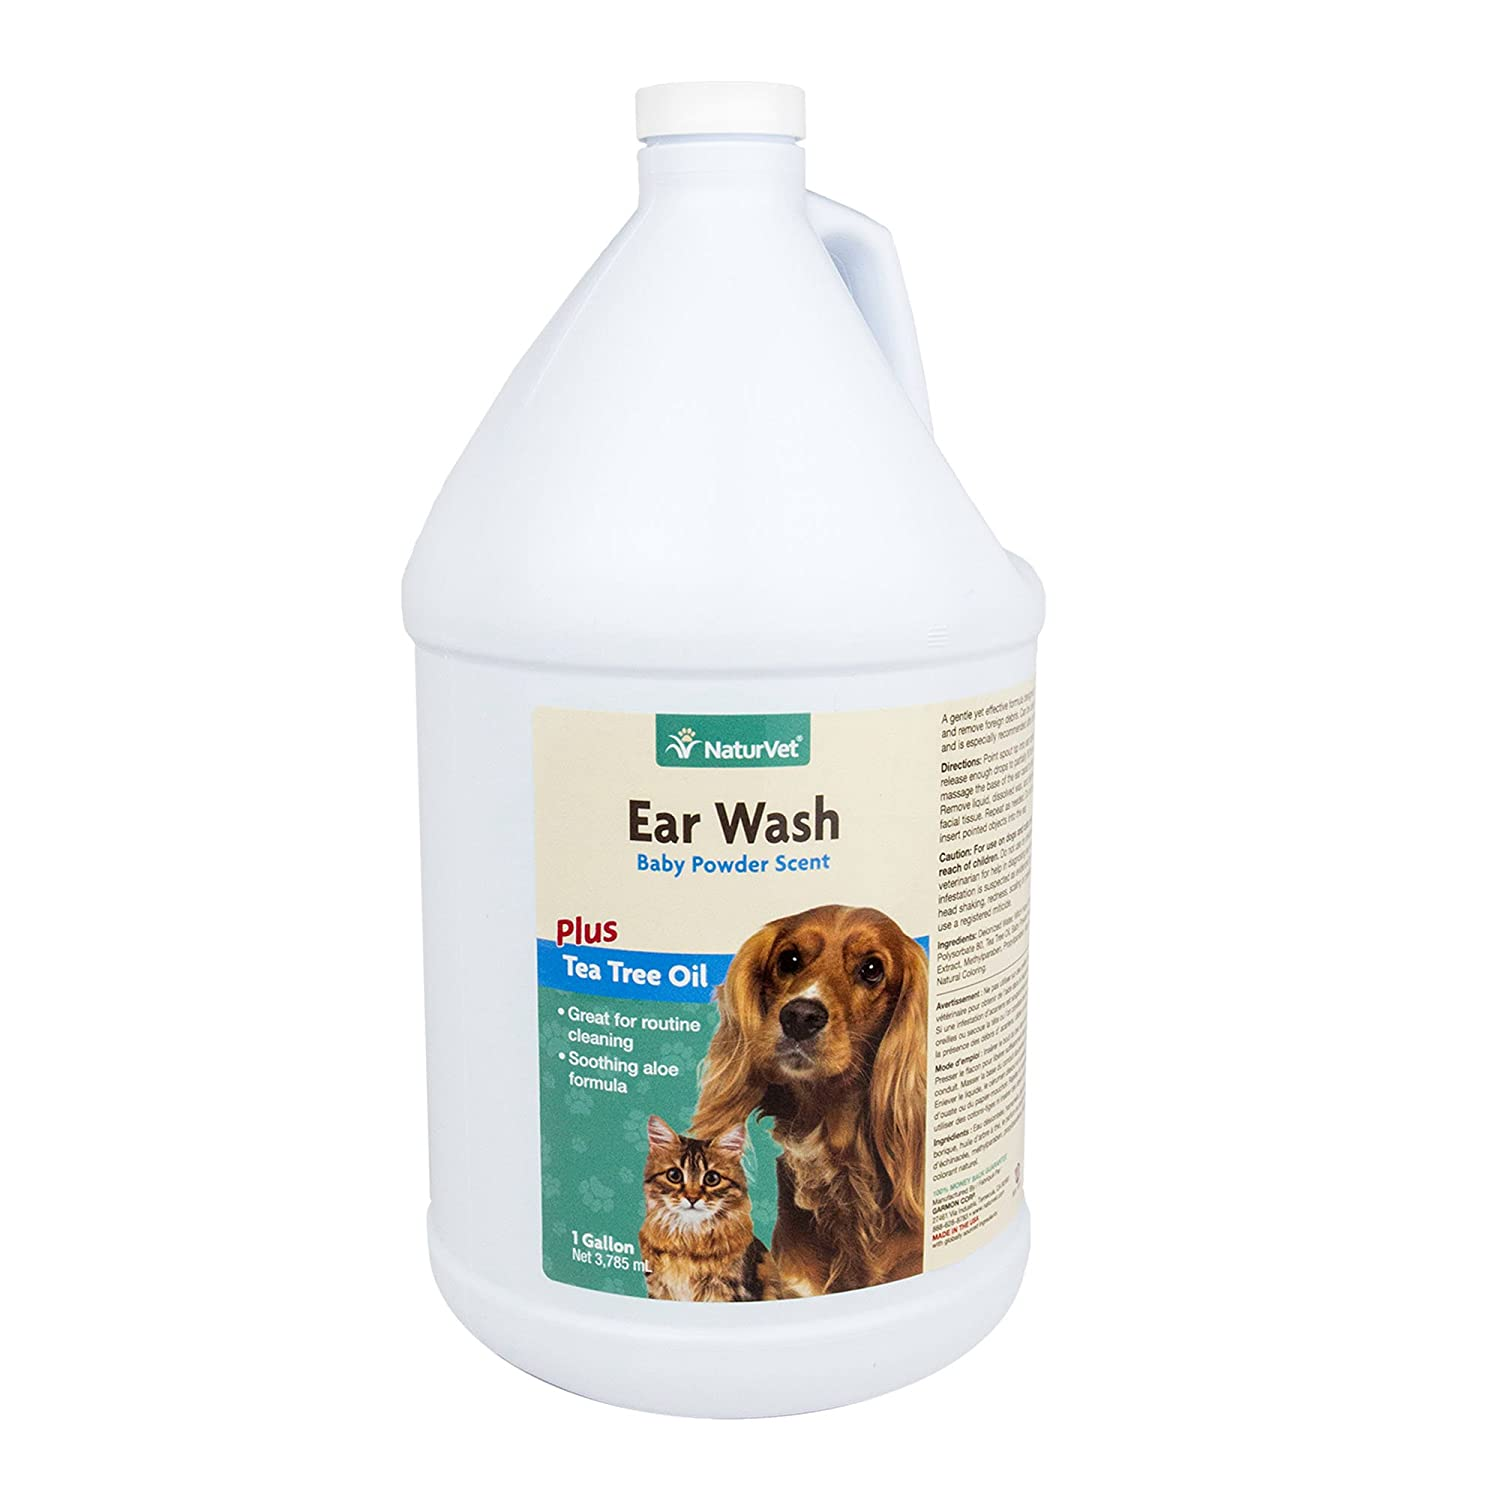 NaturVet Ear Wash Plus Tea Tree Oil for Dogs and Cats, 1 gal Liquid, Made in USA Garmon Corp 79903804